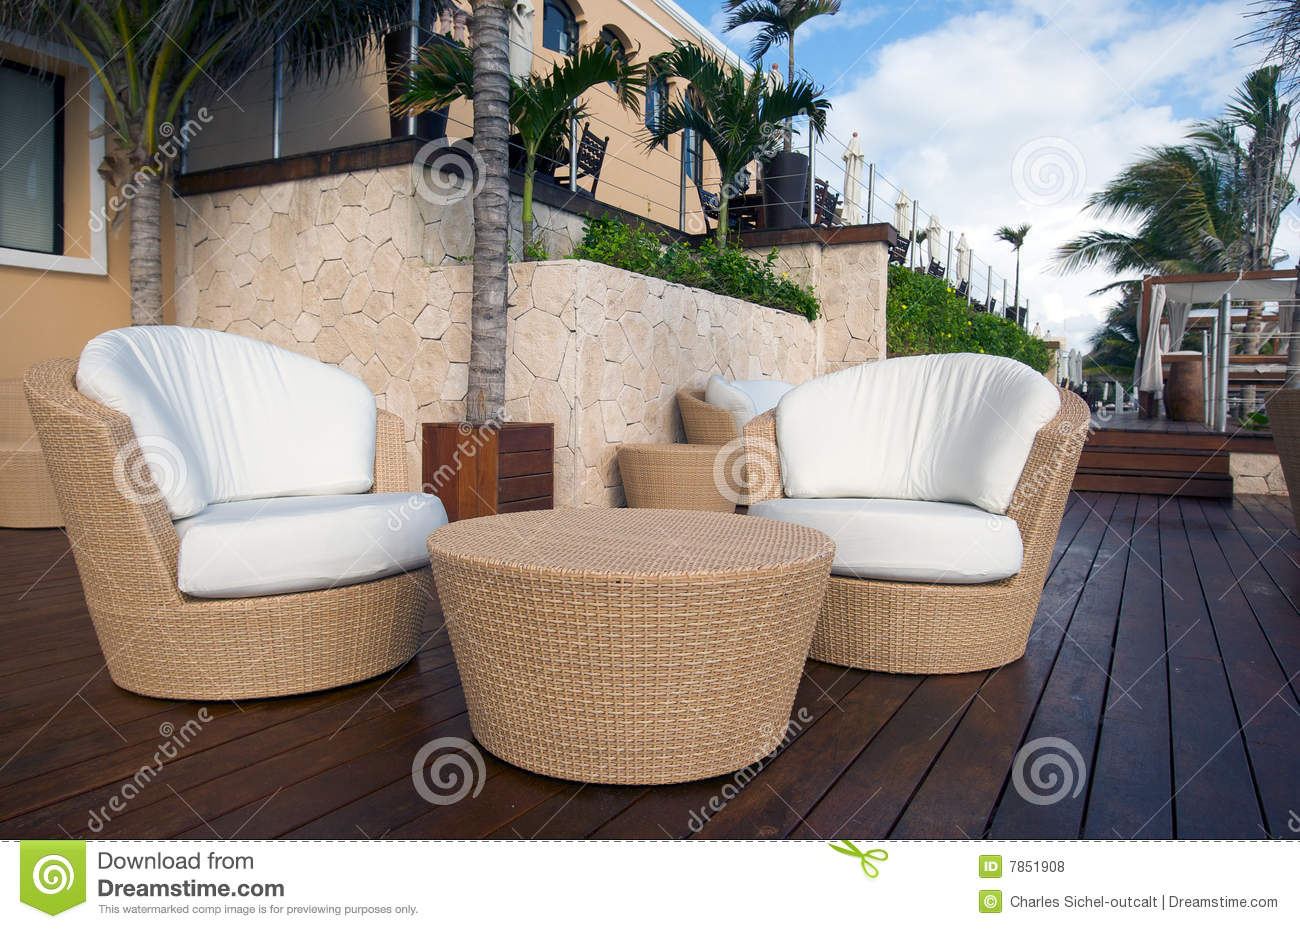 Wicker Table and Chairs at Luxury Resort